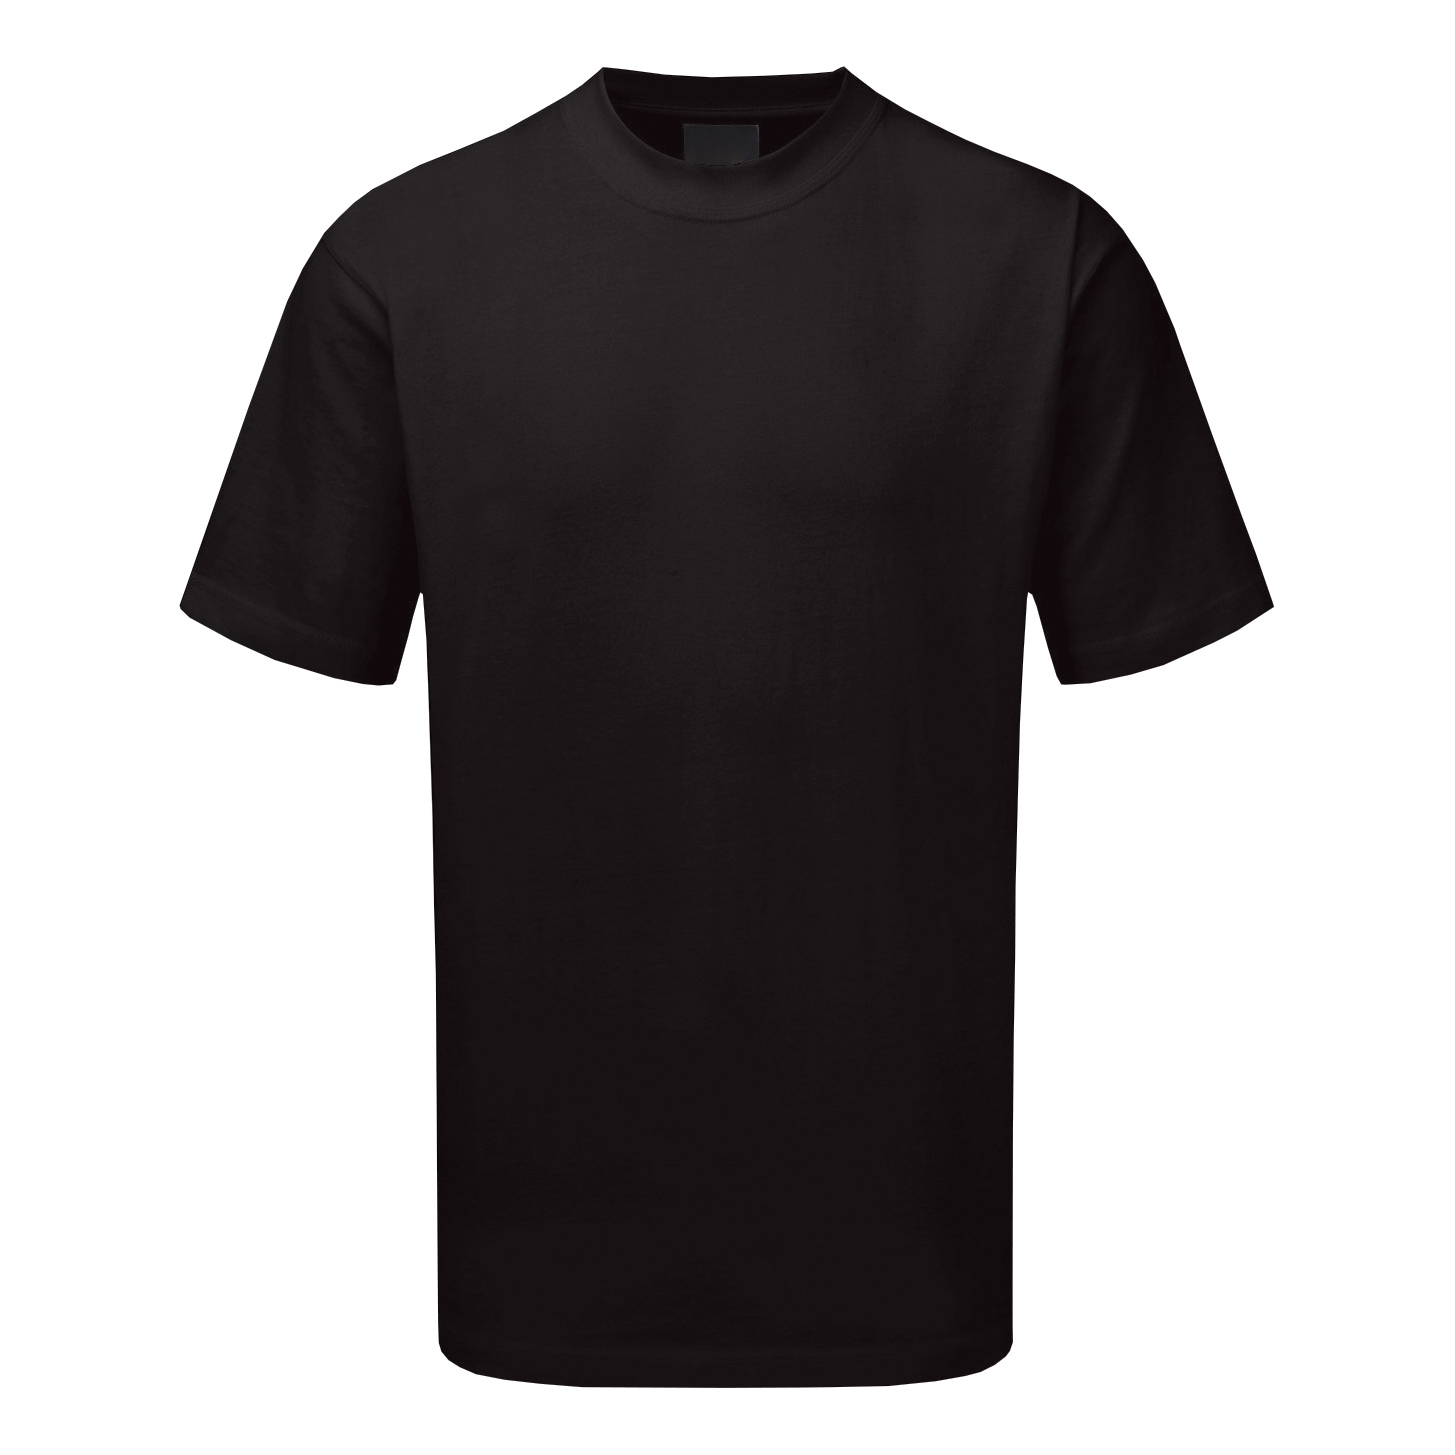 Premium T-Shirt Polycotton Triple Stitched Size 5XL Black